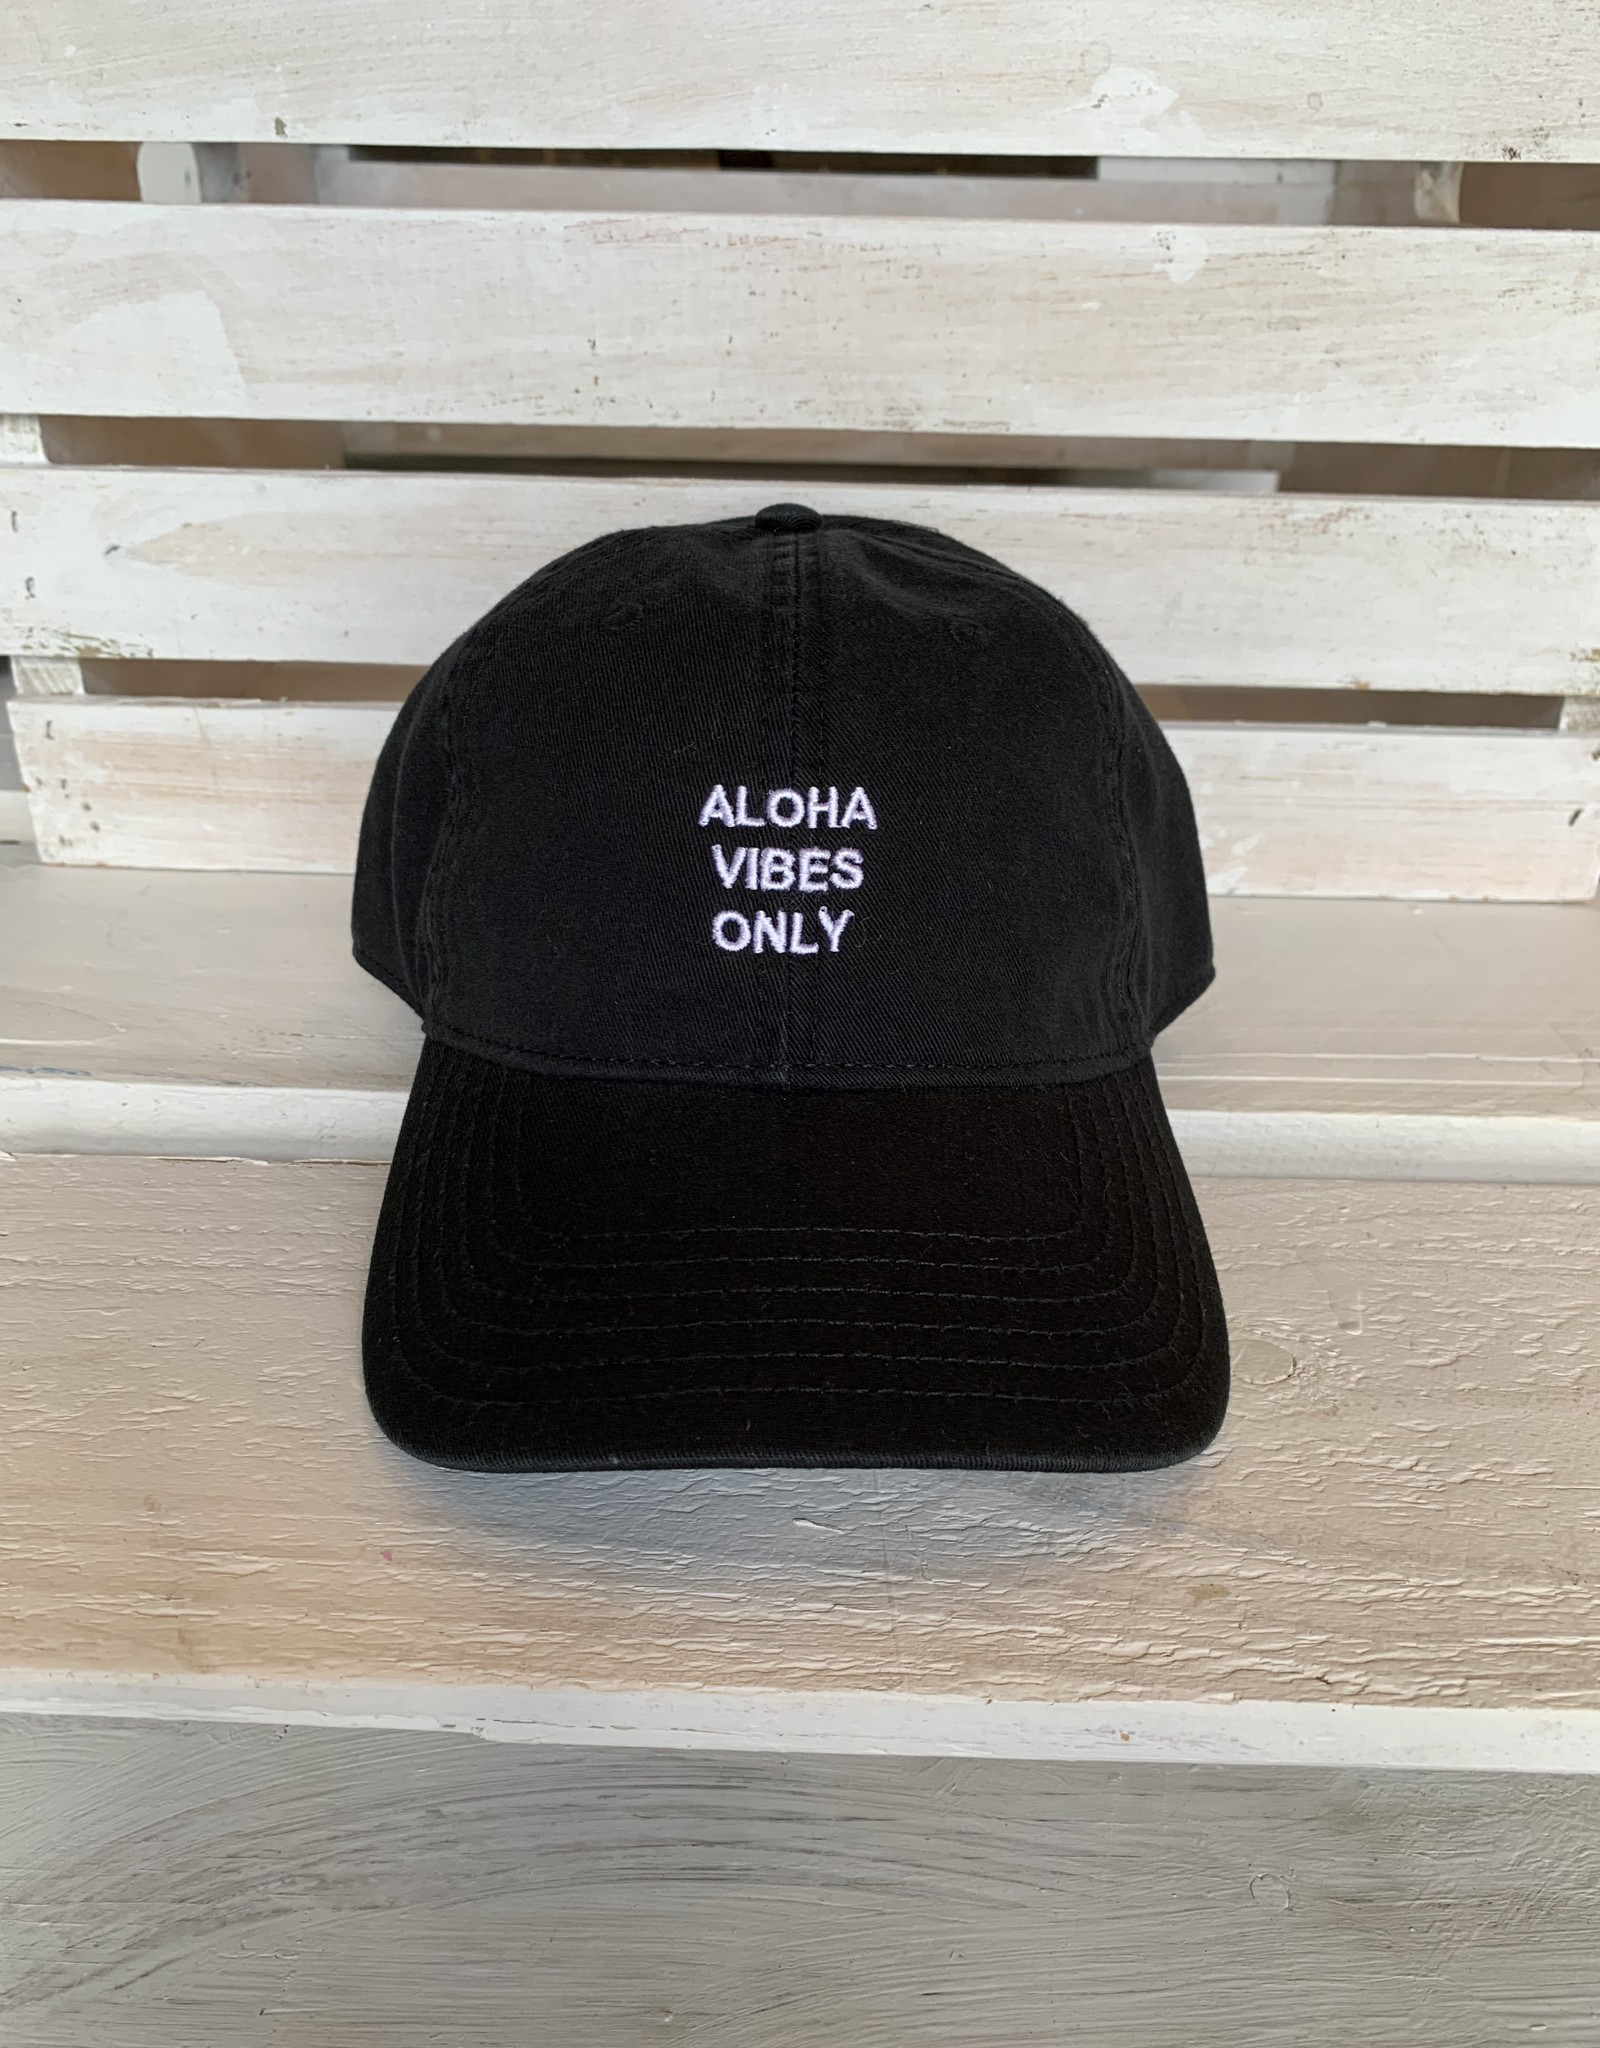 UIS UIS - Aloha Vibes Only Cap